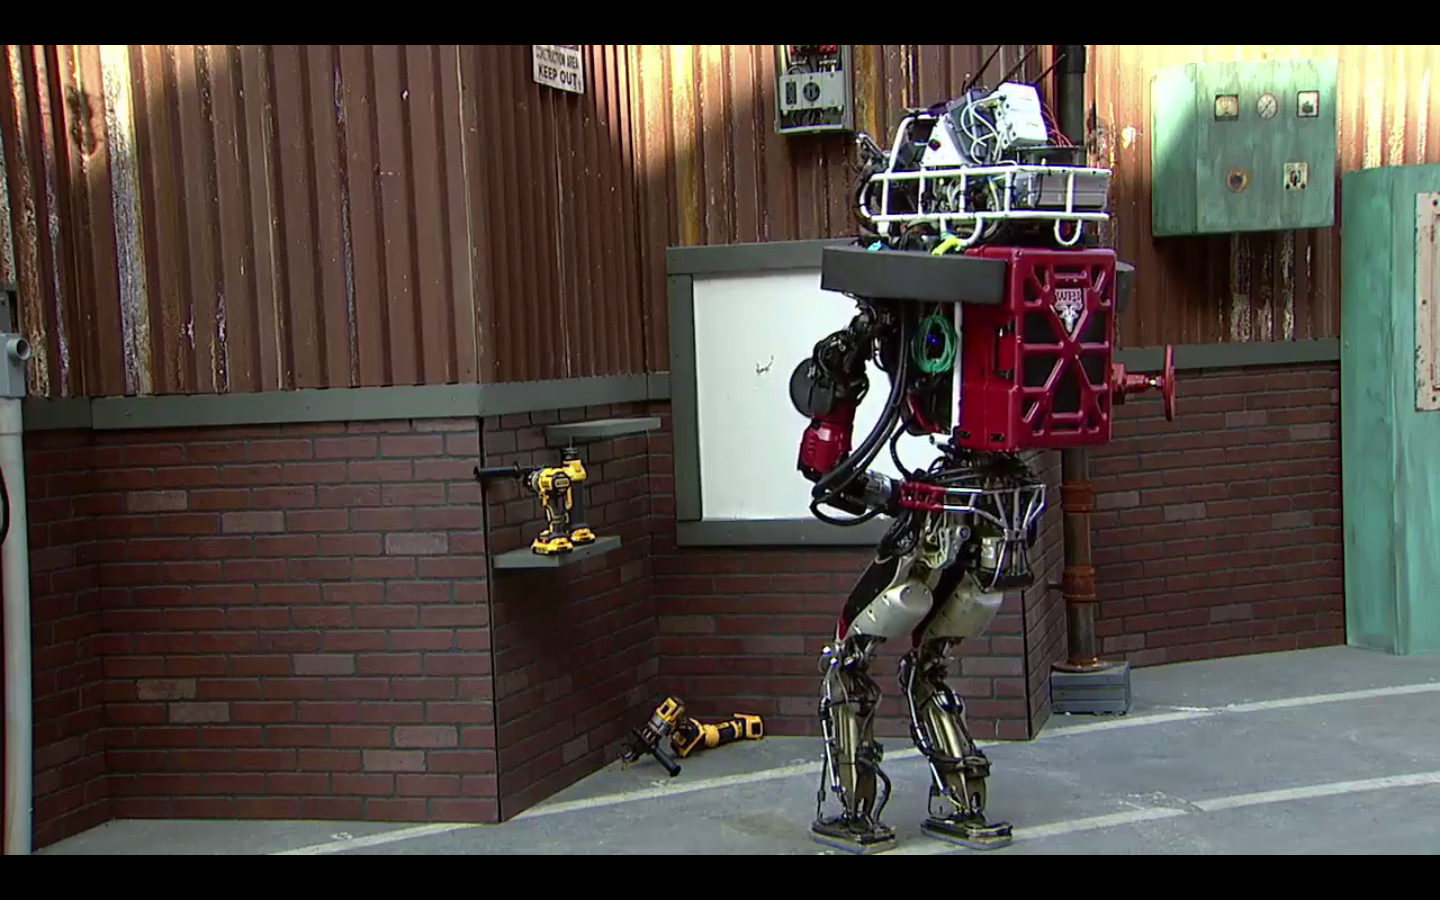 The WPI-CMU Warner ATLAS robot drops the drill it was going to use to make a hole in a wall at the 2015 DARPA Robotics Challenge in Pomona, Calif., on June 6.